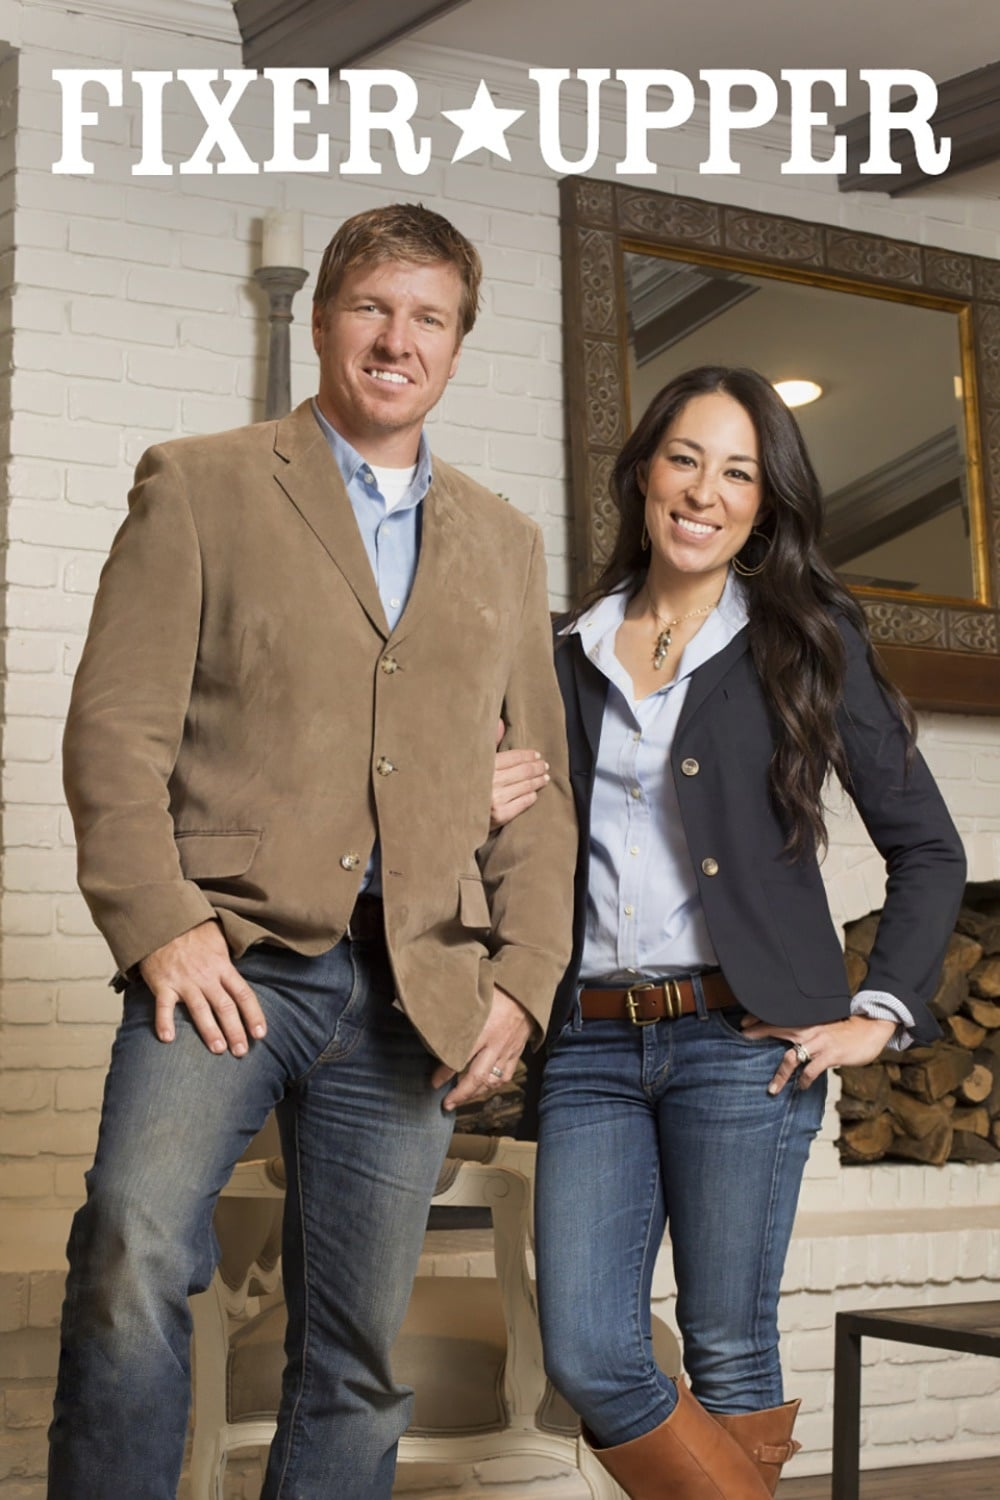 image for Fixer Upper